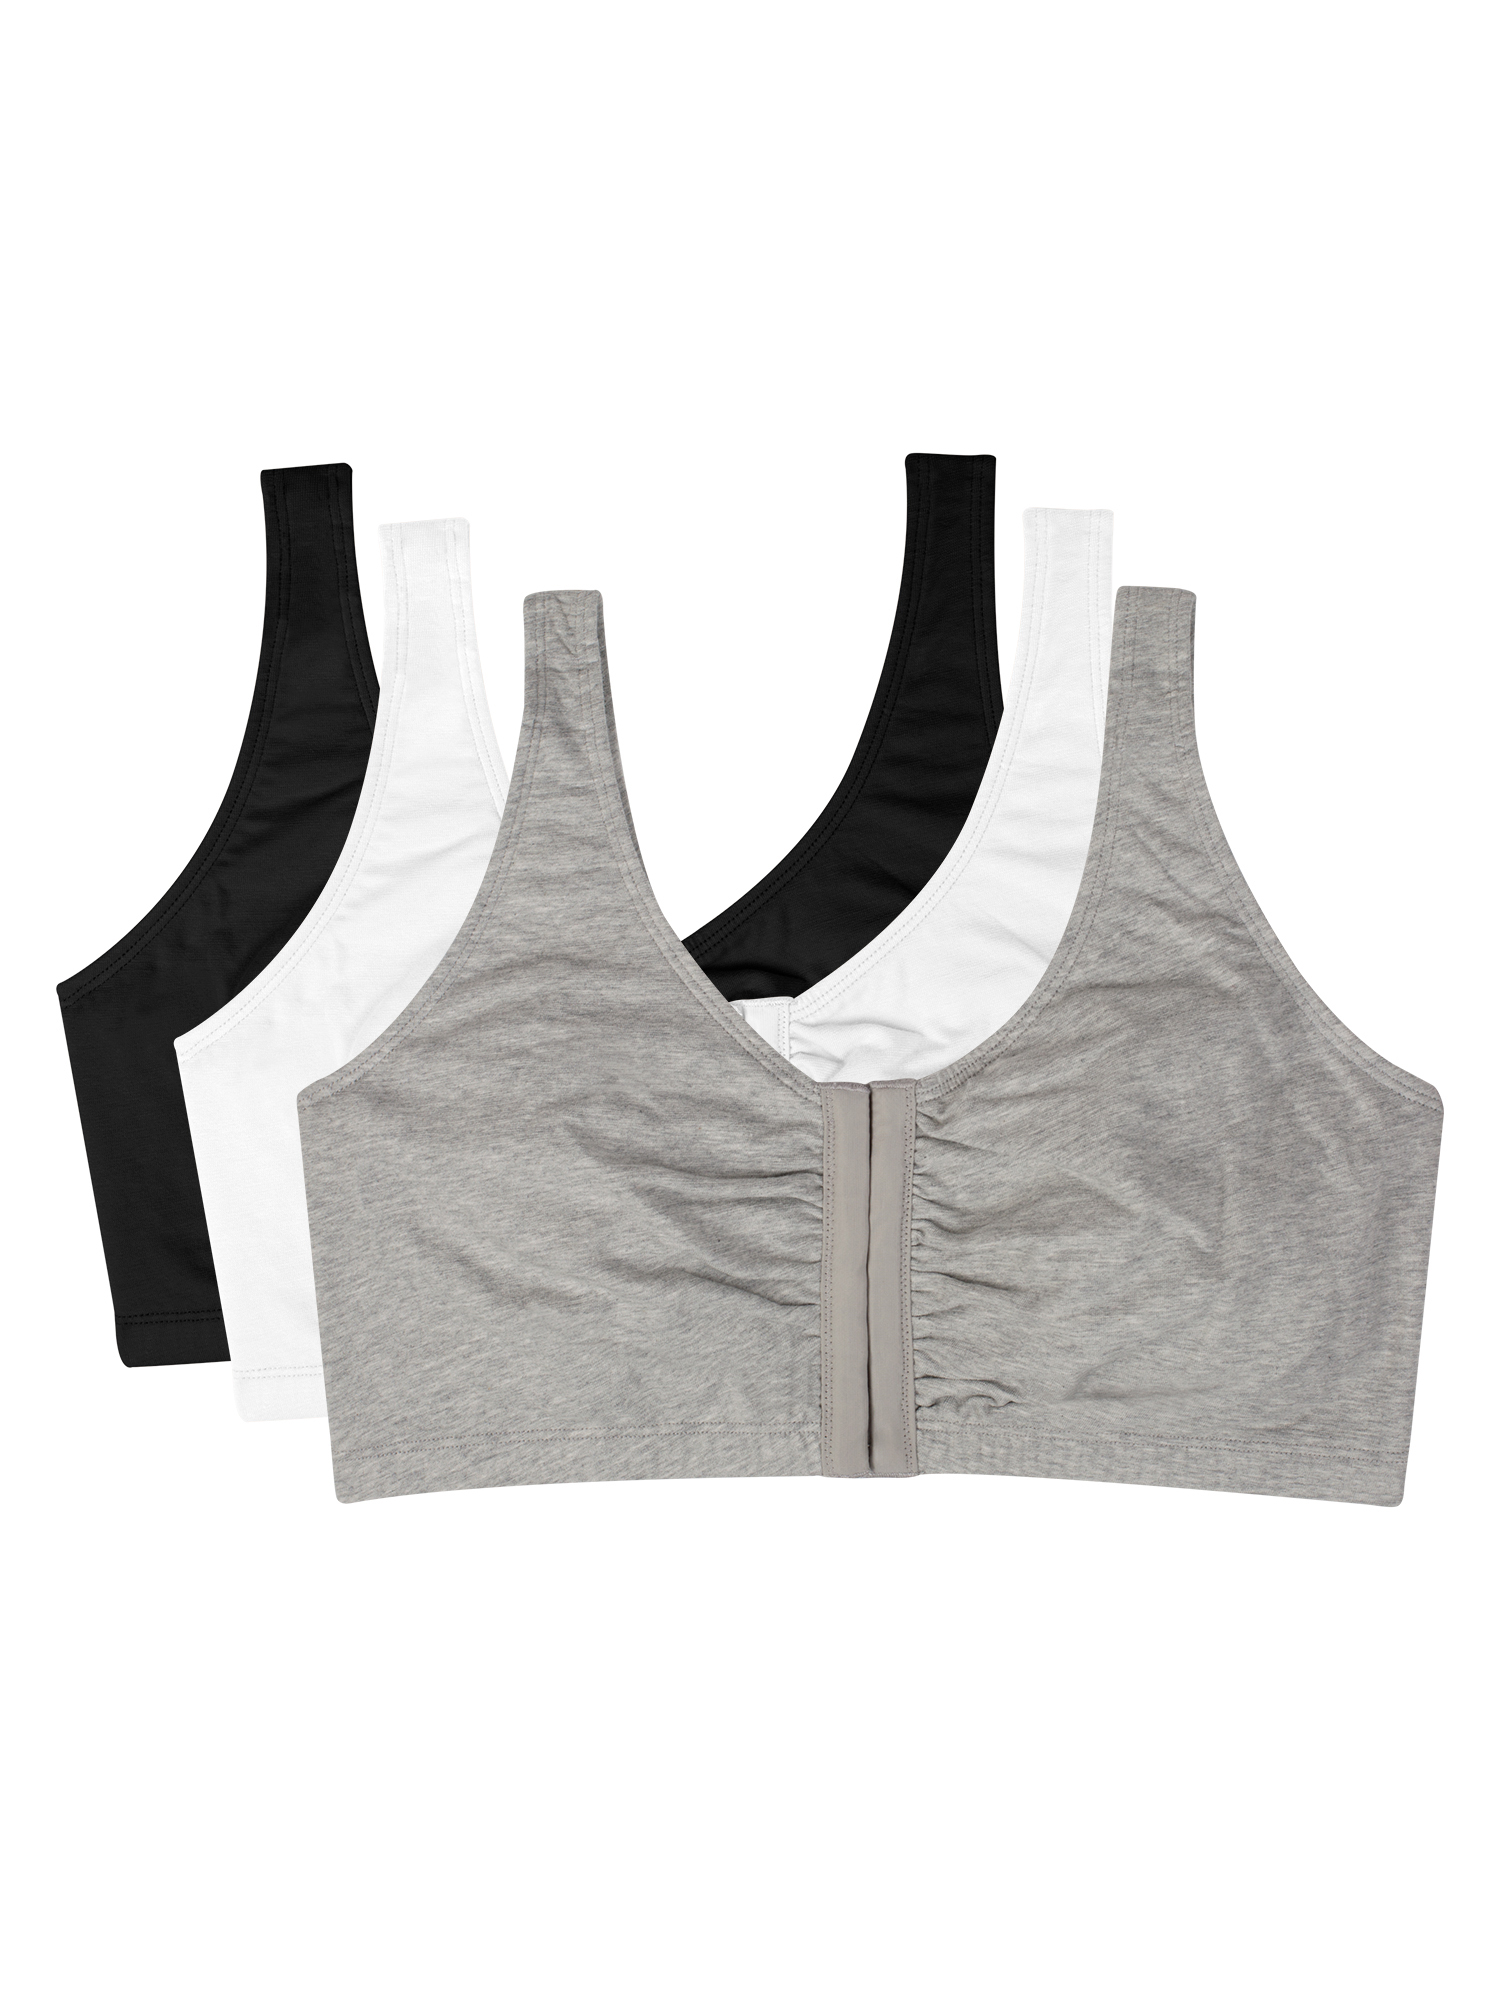 Womens Comfort Front Close Sports Bra, 3 Pack, Style 96014D